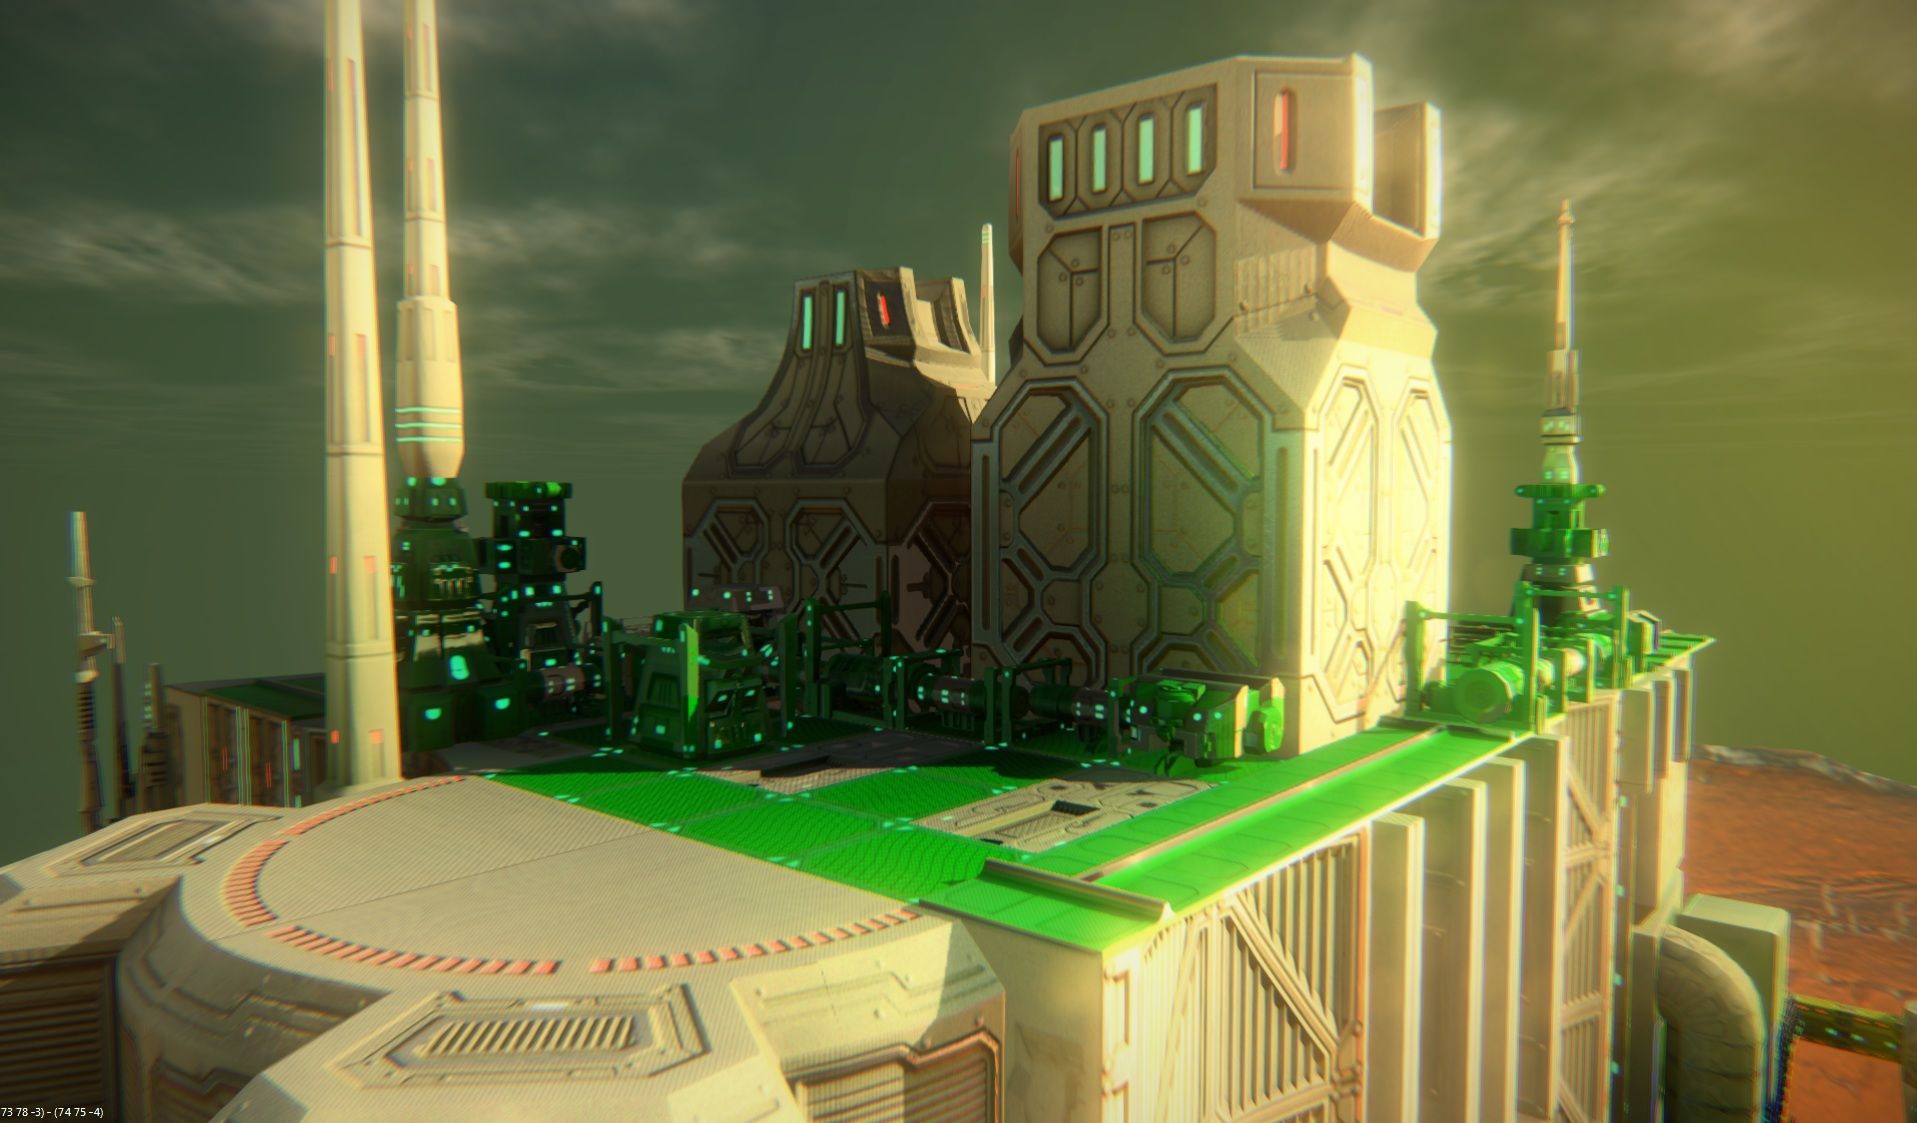 Our global illumination demo mode